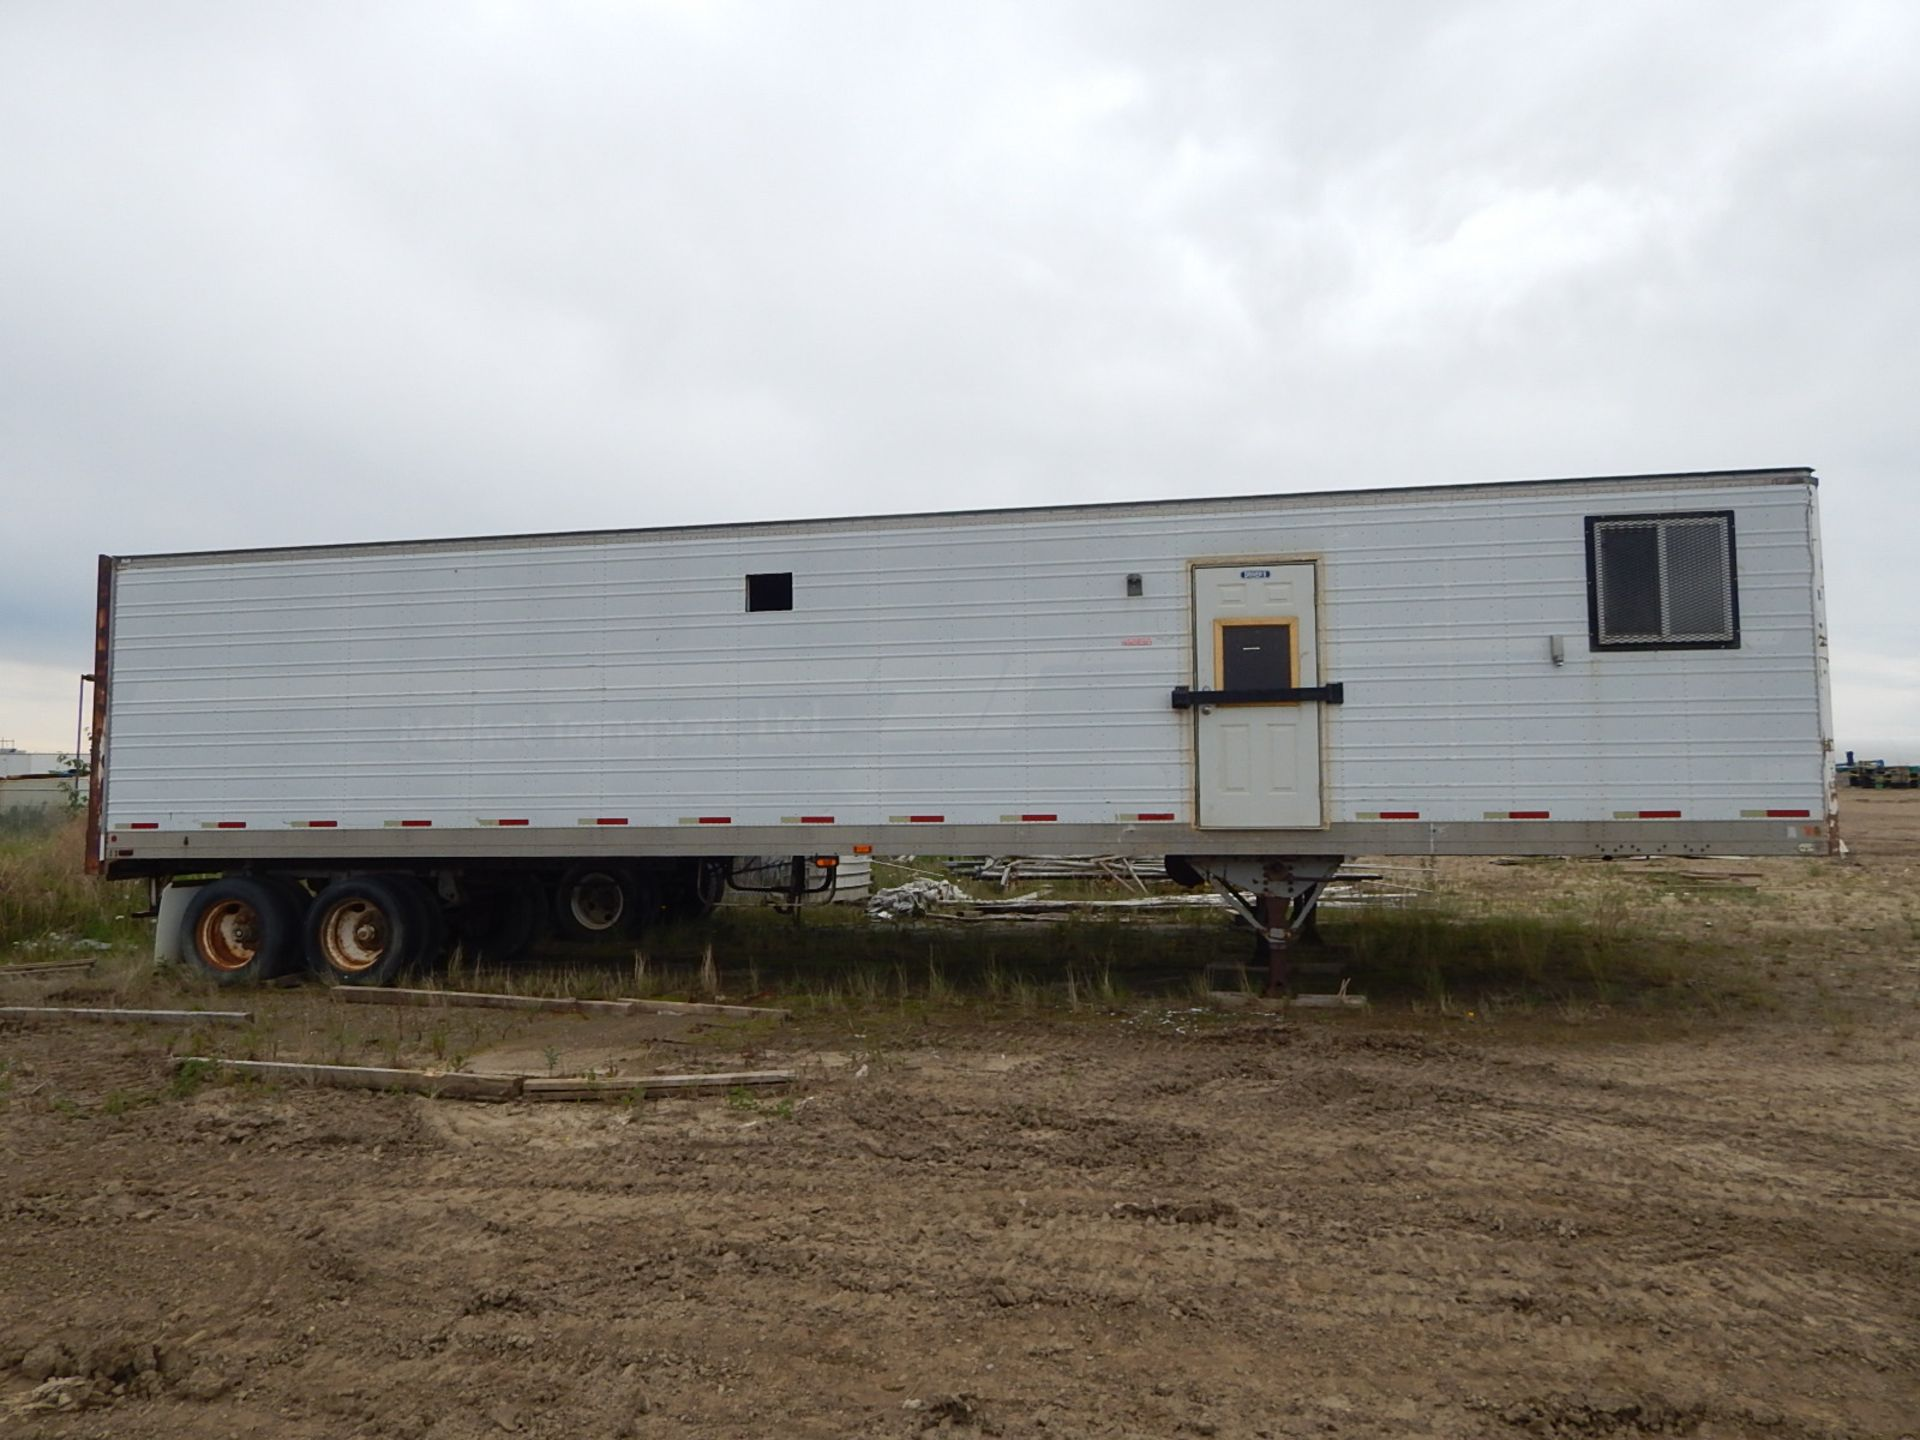 53' YARD TRAILER, S/N: N/A (NO REGISTRATION) (CI) - Image 2 of 5